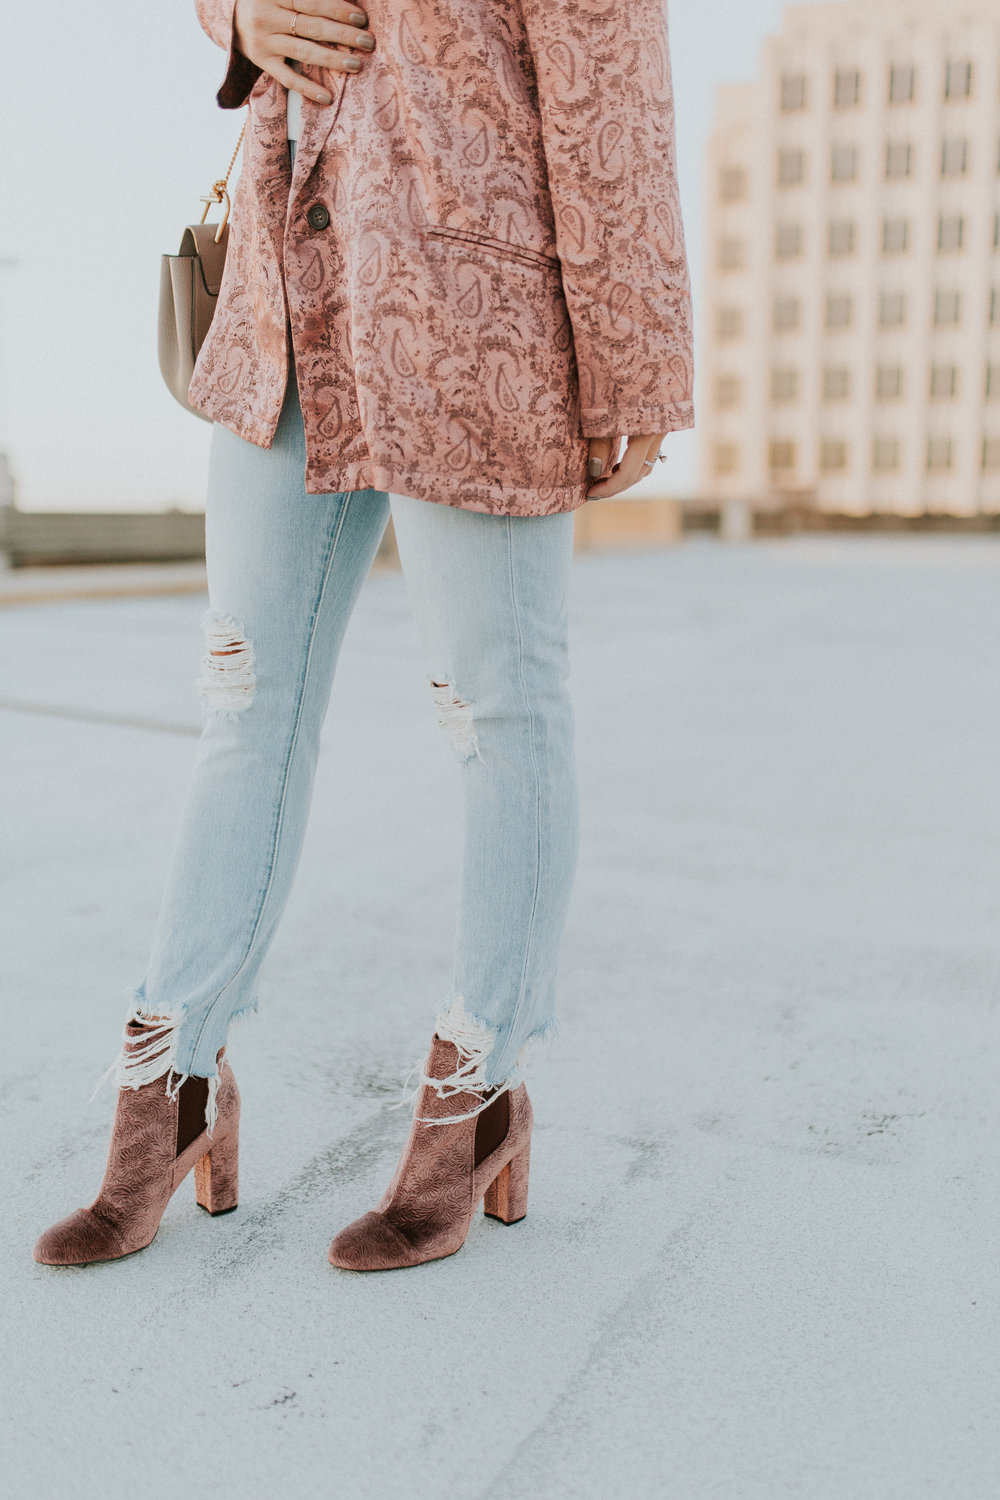 Blogger Gracefully Taylored in Free People Jacket and Sam Edelman Booties(11).jpg